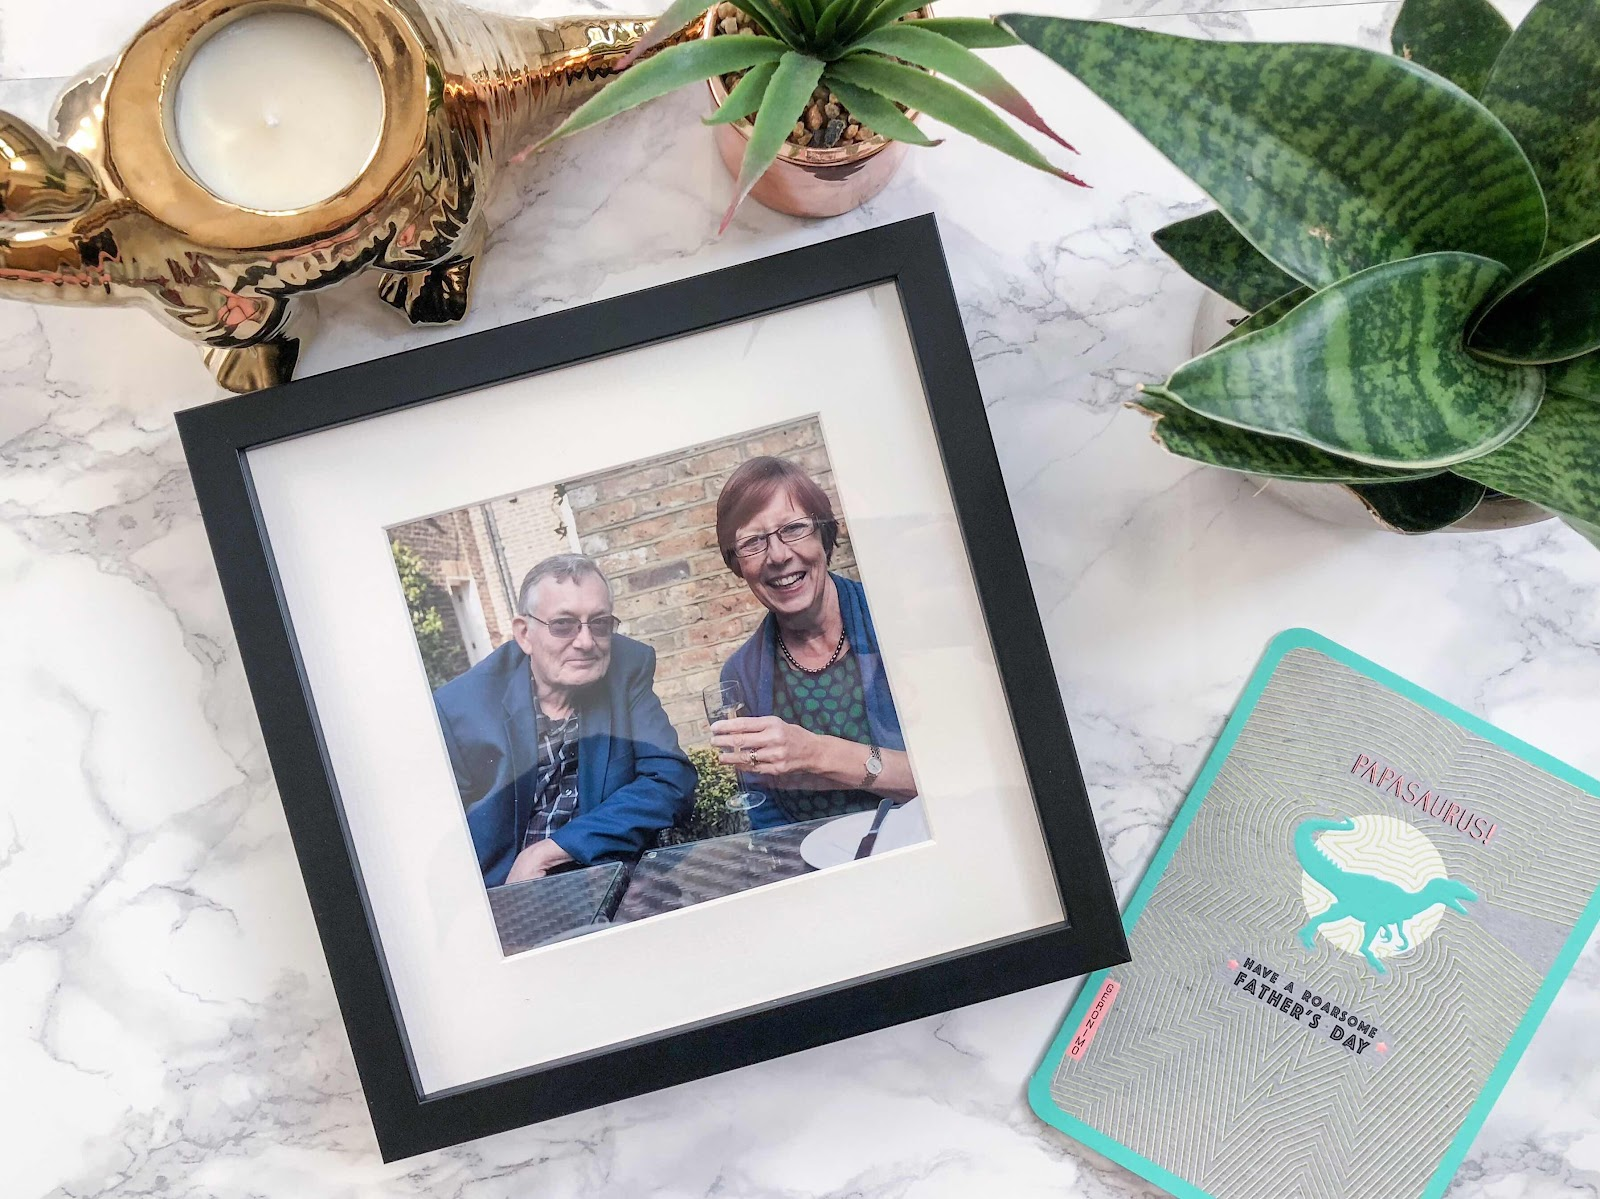 lifestyle-blog-fathers-day-gift-ideas-personalised-photo-cheerz-discount-code